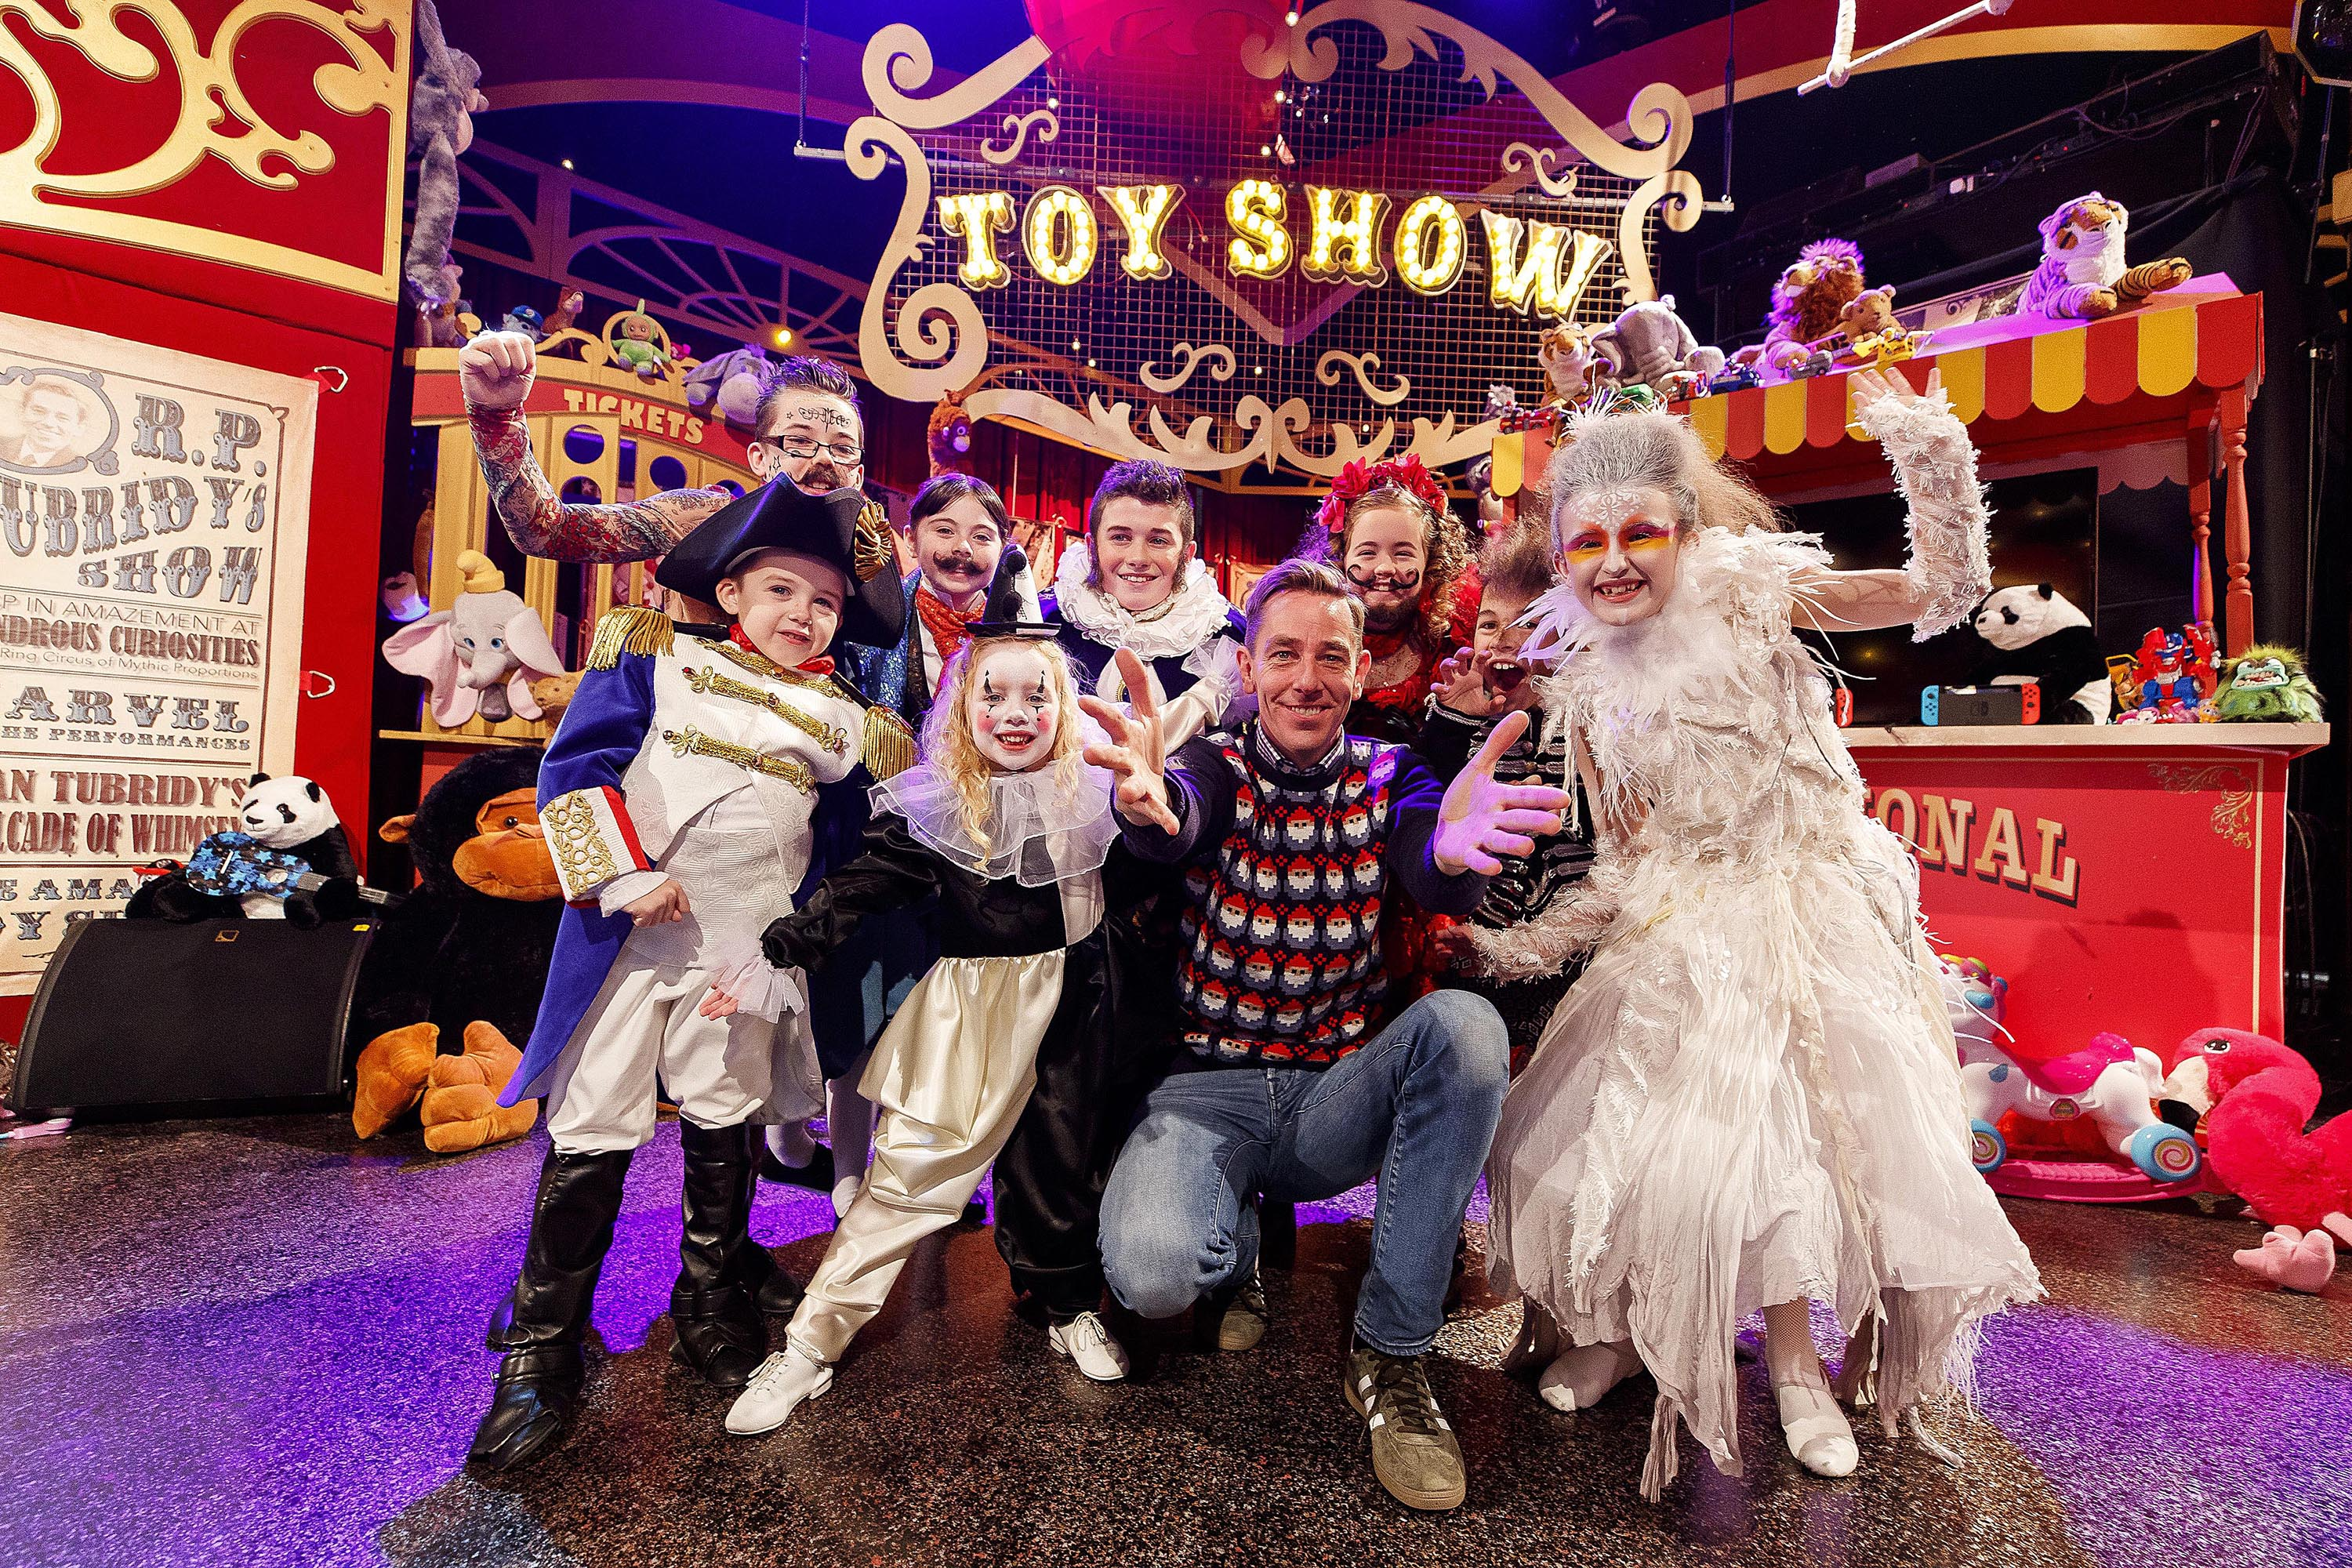 ***Embargoed untill 30/11/2018*** Repro Free: 29/10/2018 The theme of this year's Late Late Toy Show was revealed to be The Greatest Showman. Host Ryan Tubridy and the cast of hundreds have prepared for the most magical night of the Irish television. Pictured with Ryan are some of the cast Tatto Man Dylan Allen (5) from Navan, Napoleon Luke O'Connor (7) from Dublin, 3-Legged Man Kayla McMahon (10) from Balrothery, Pierrot clown enya Allen (5) from Navan, Fatman Mathew Little (12) from Dublin, Bearded Lady, Alannah Willoughby (12) from Carlow and Wolf Man Colm O'Sullivan 98) from Navan, Albino Ella Maher (10) from Carlow. Picture Andres Poveda